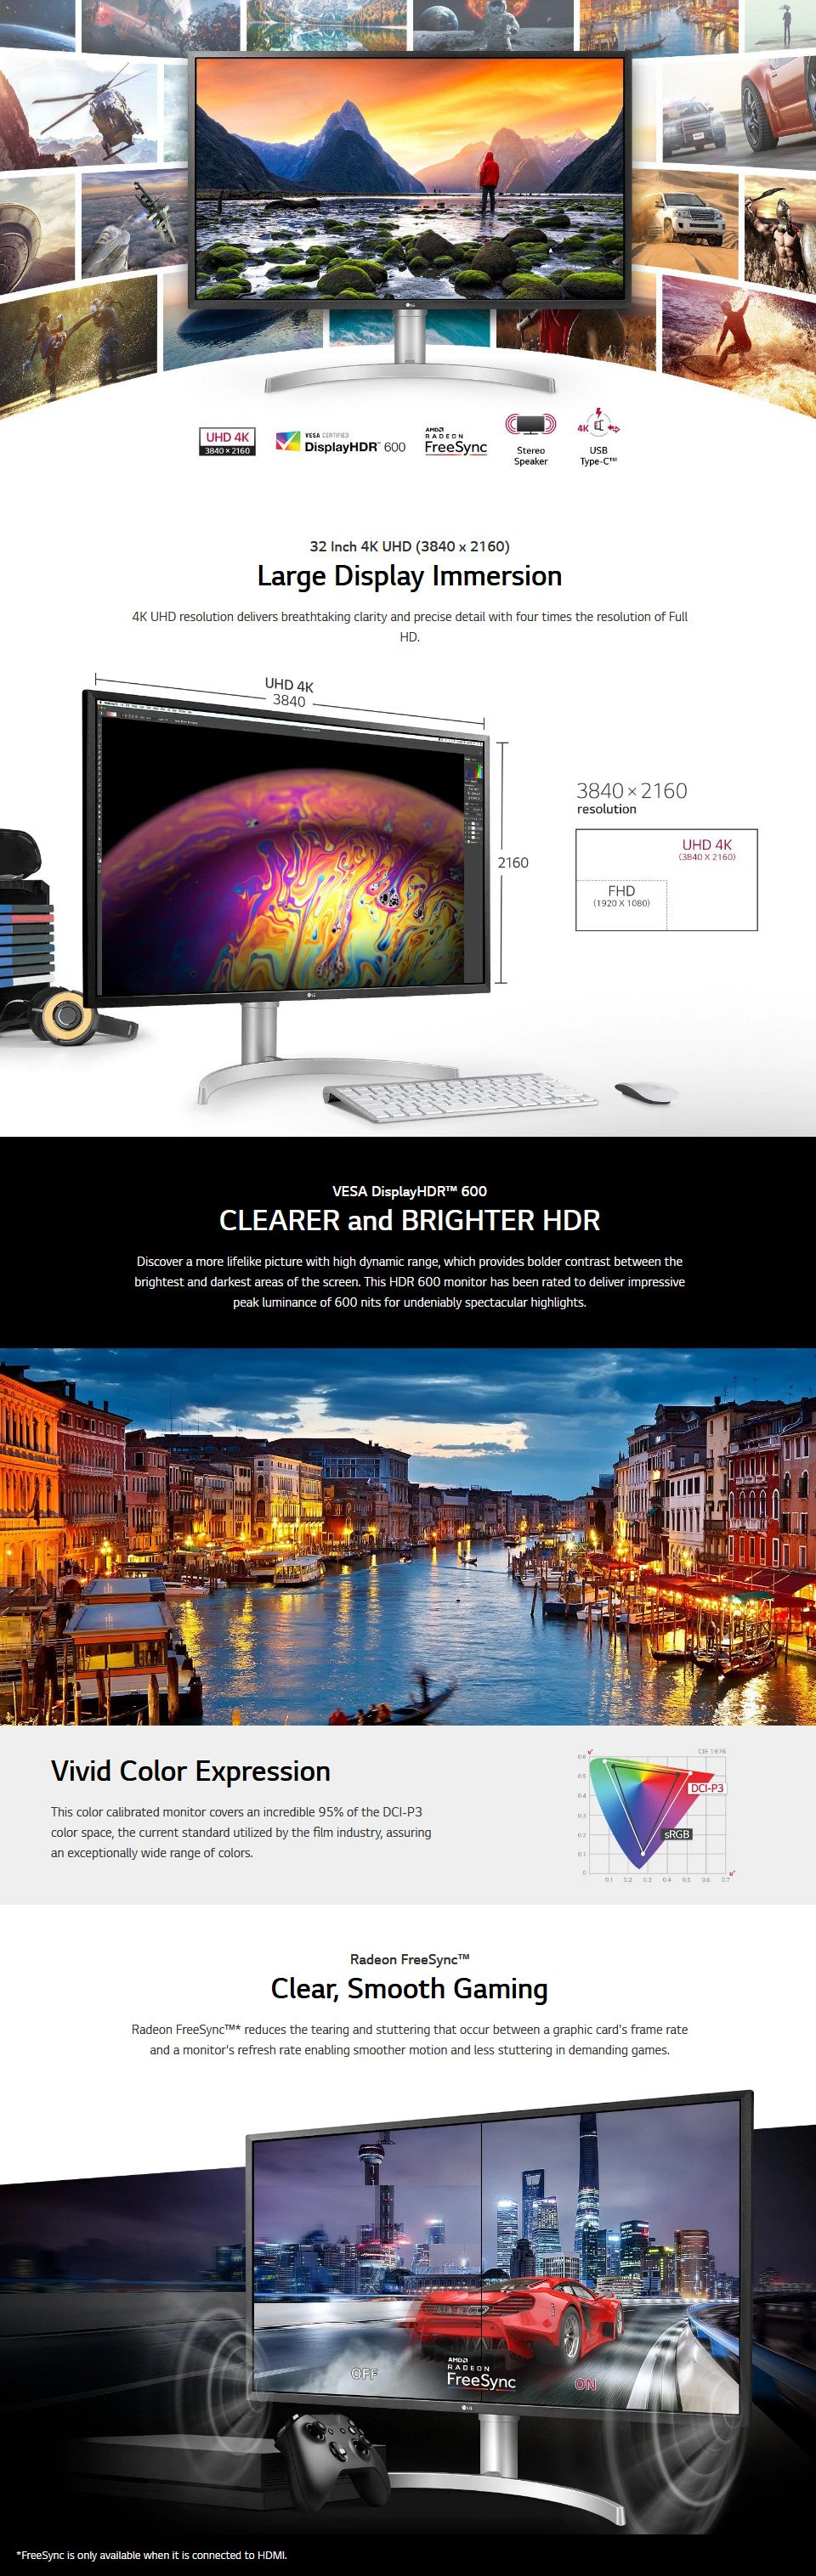 LG 32UL750-W UHD FreeSync HDR 32in Monitor with USB-C features